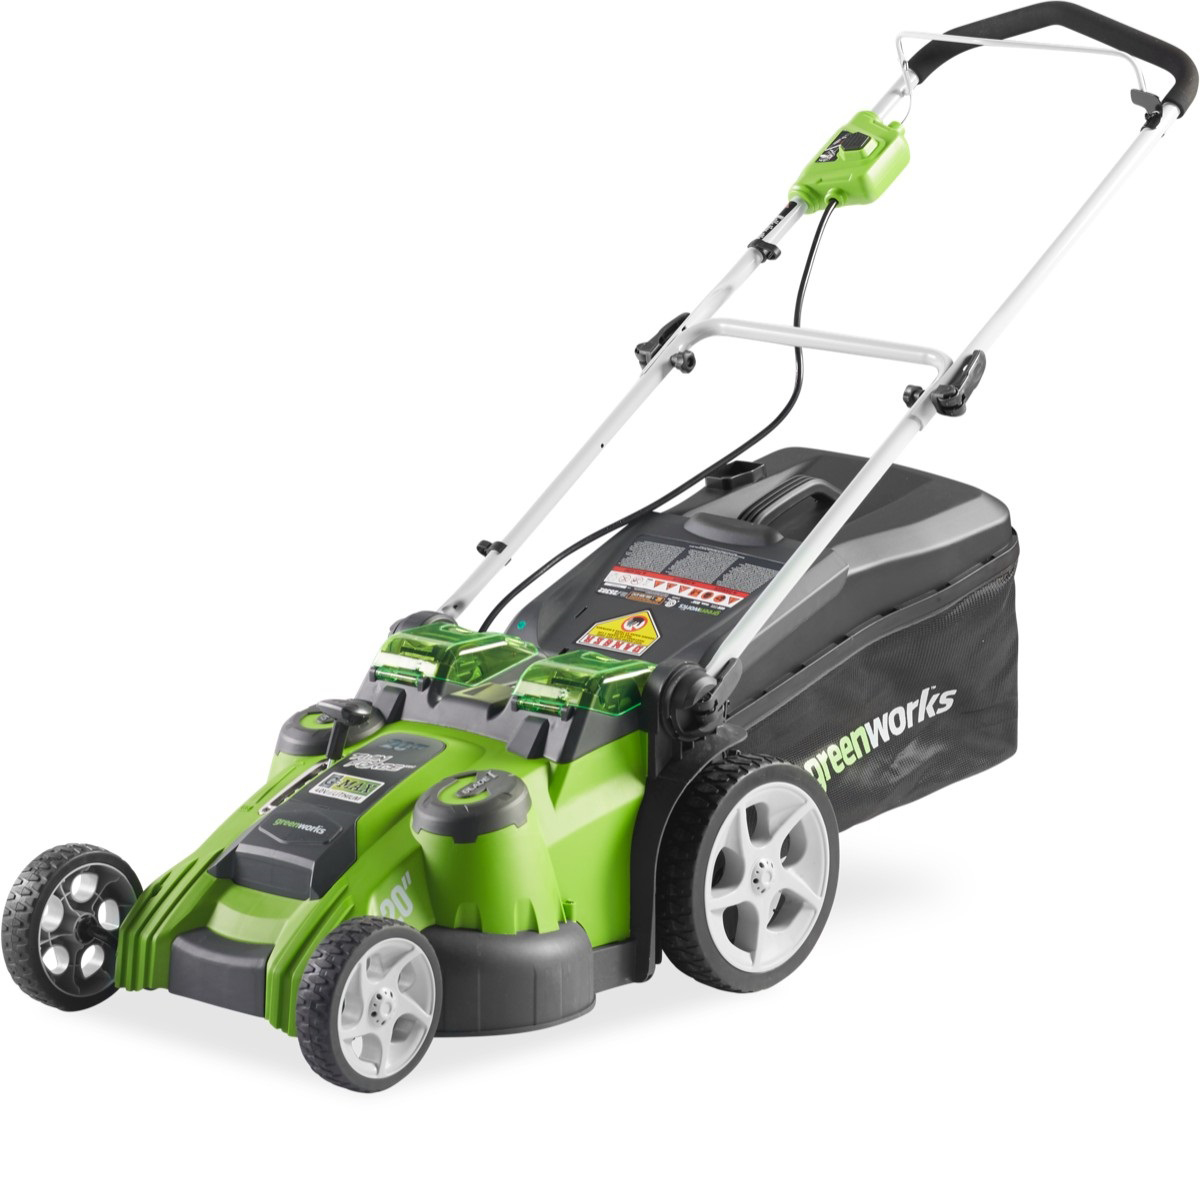 Lawn Mower Pictures Free Download Best Lawn Mower